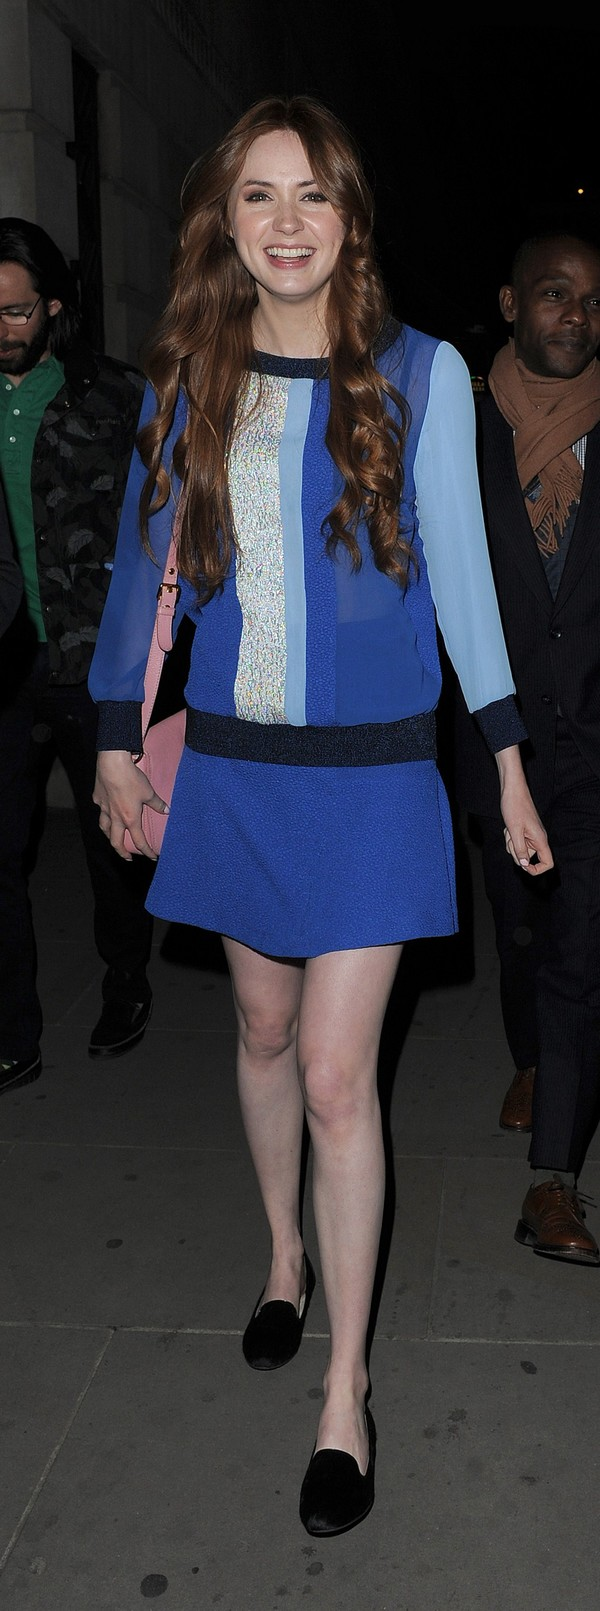 Karen Gillan at Aqua Nueva Restaurant in London on May 3, 2013